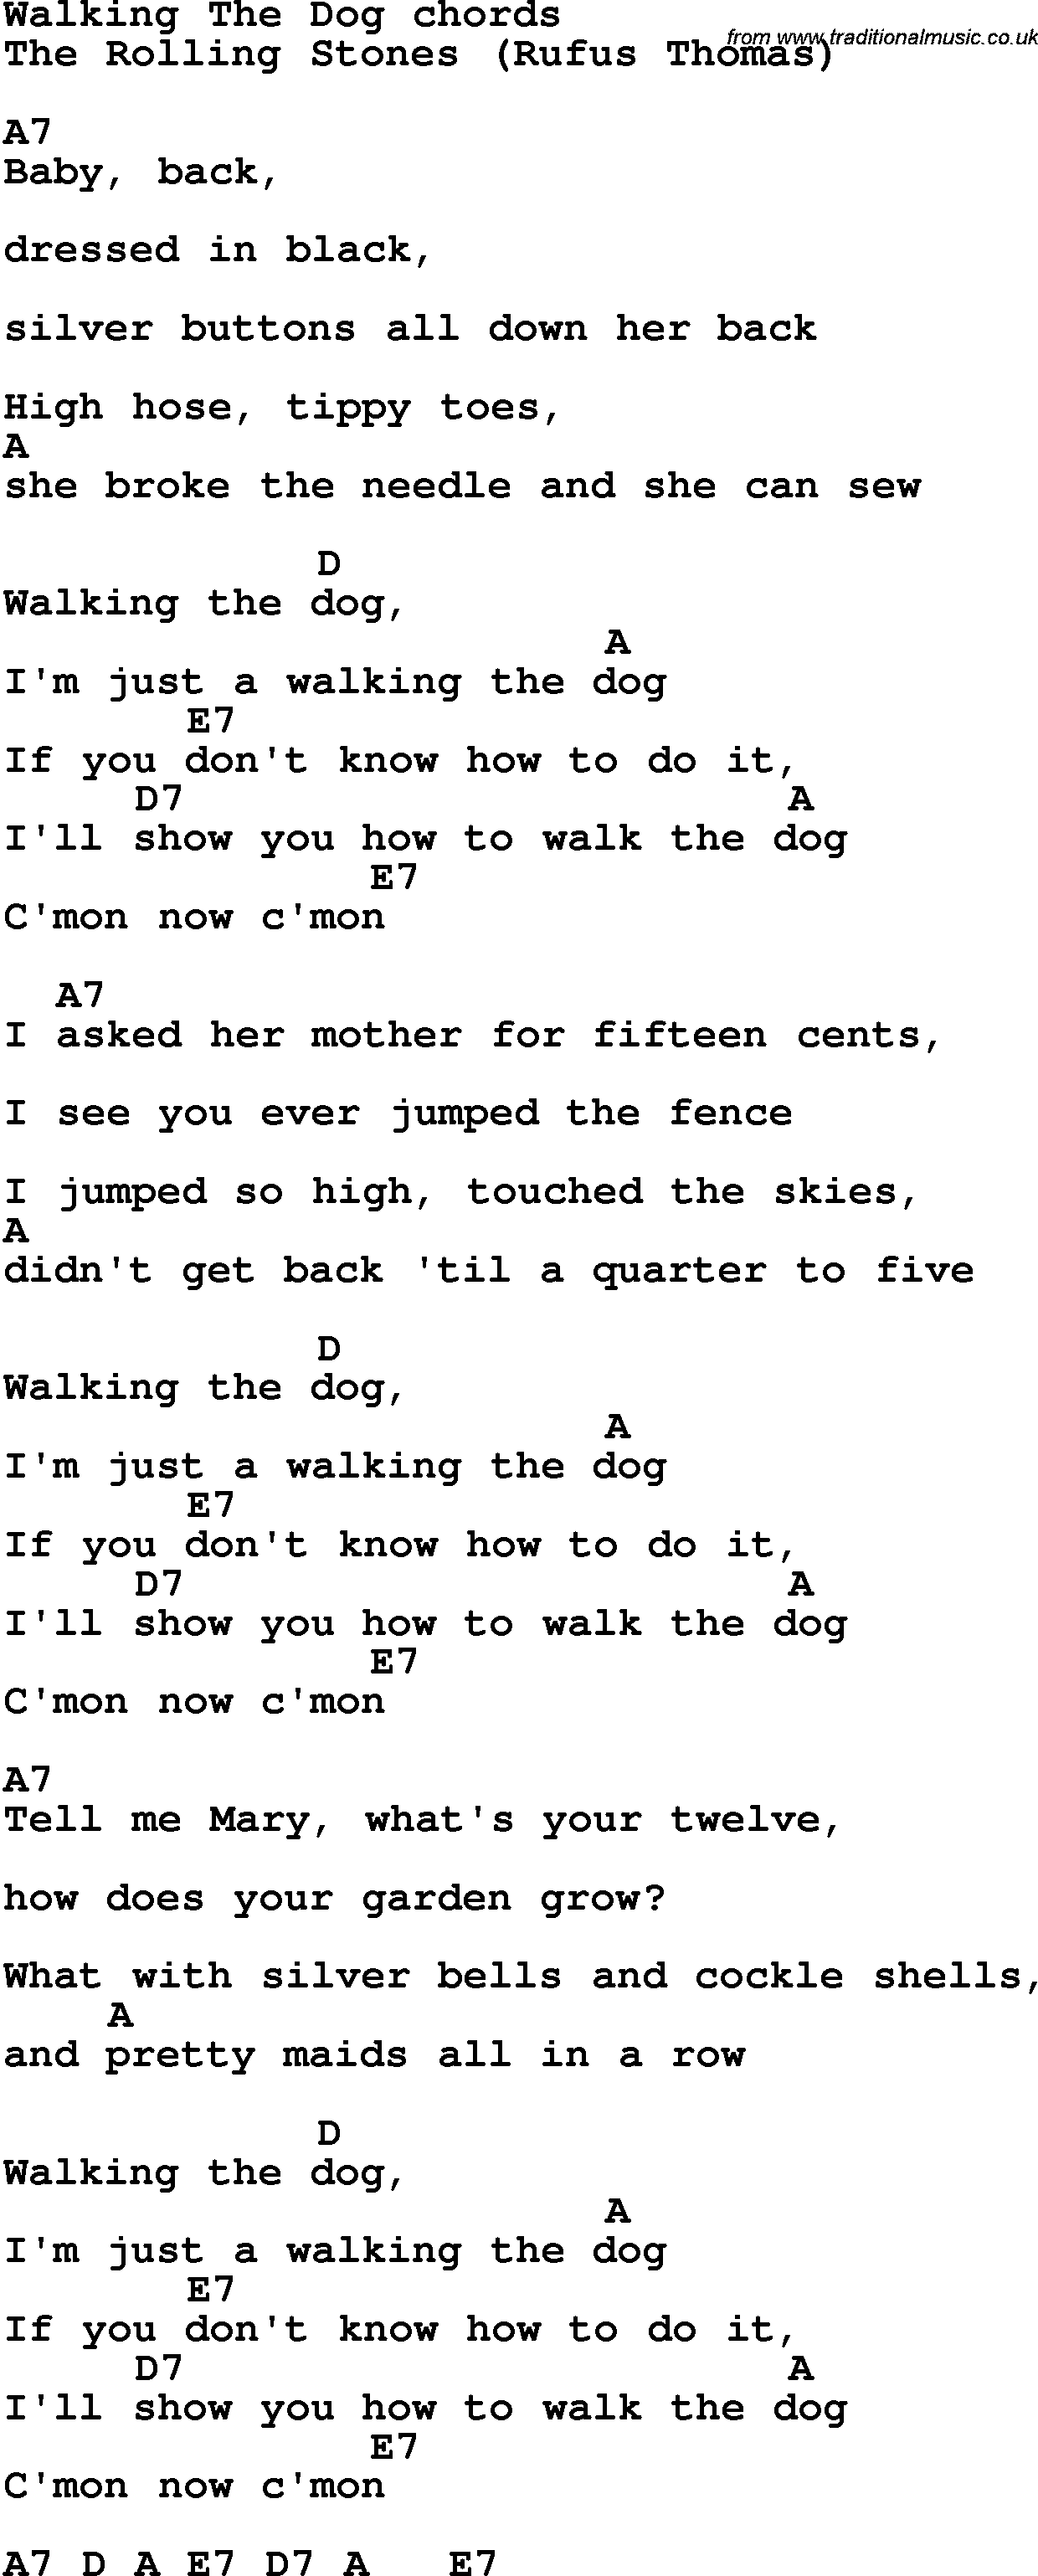 Song Lyrics With Guitar Chords For Walking The Dog